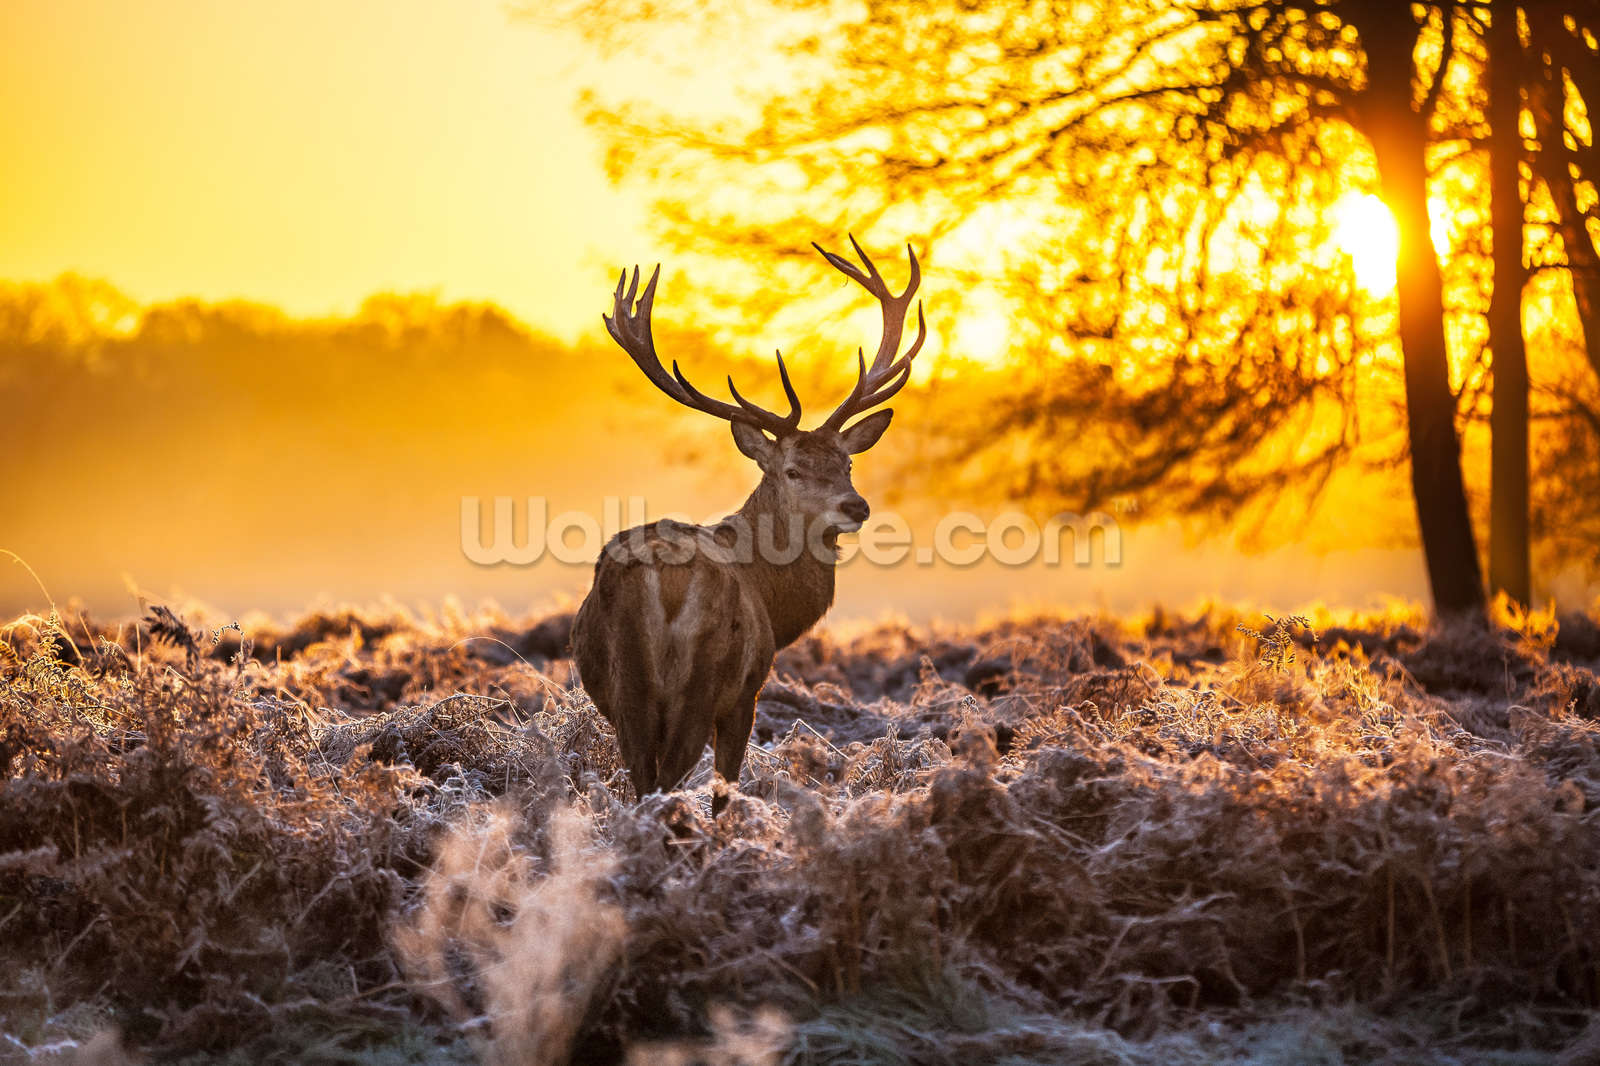 stunning red deer in morning sun wallpaper wall mural | wallsauce usa